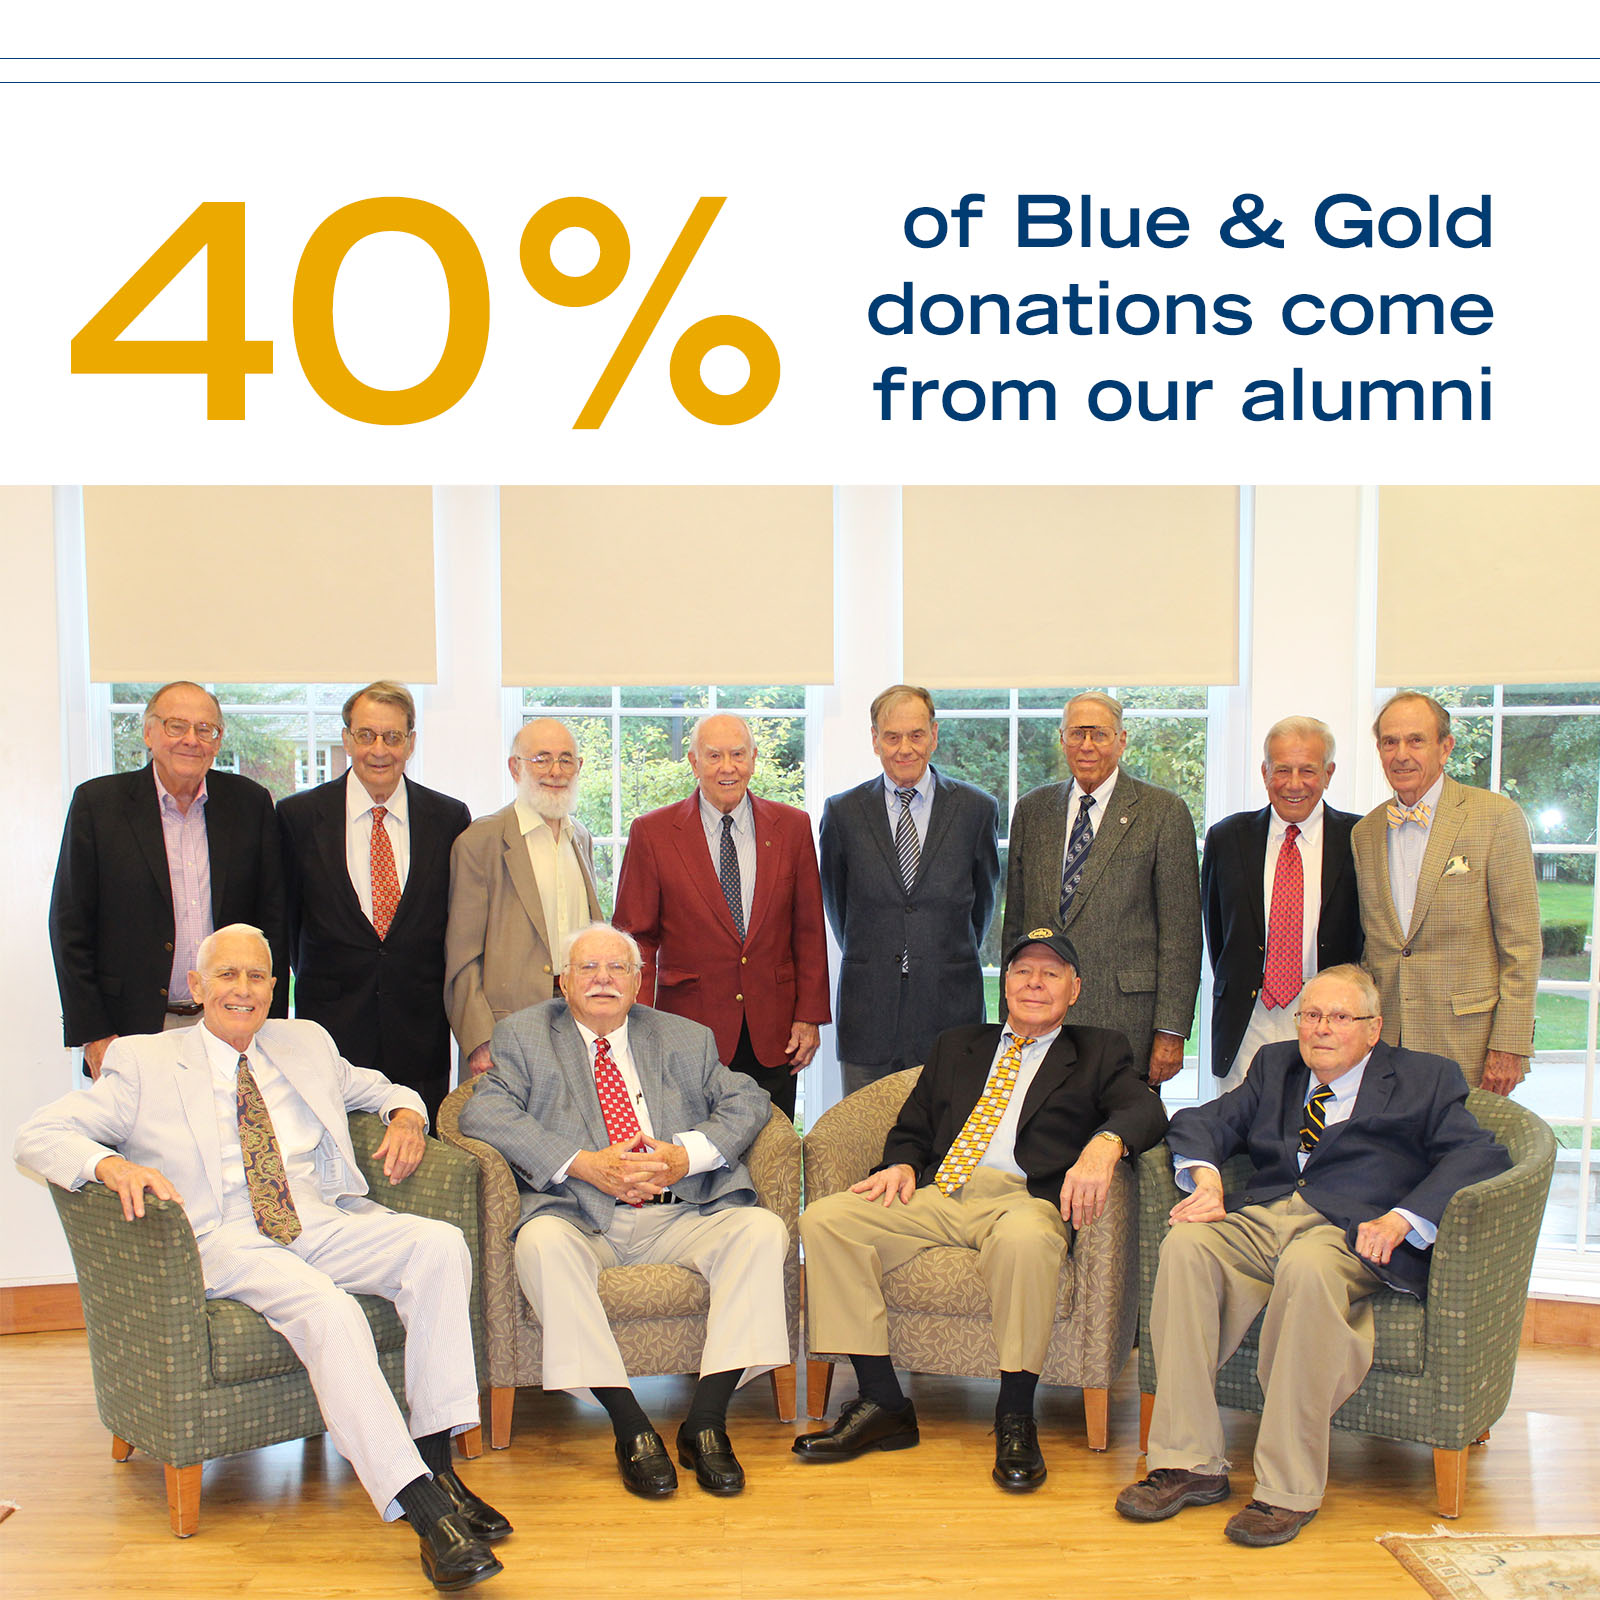 40% of donations come from our alumni